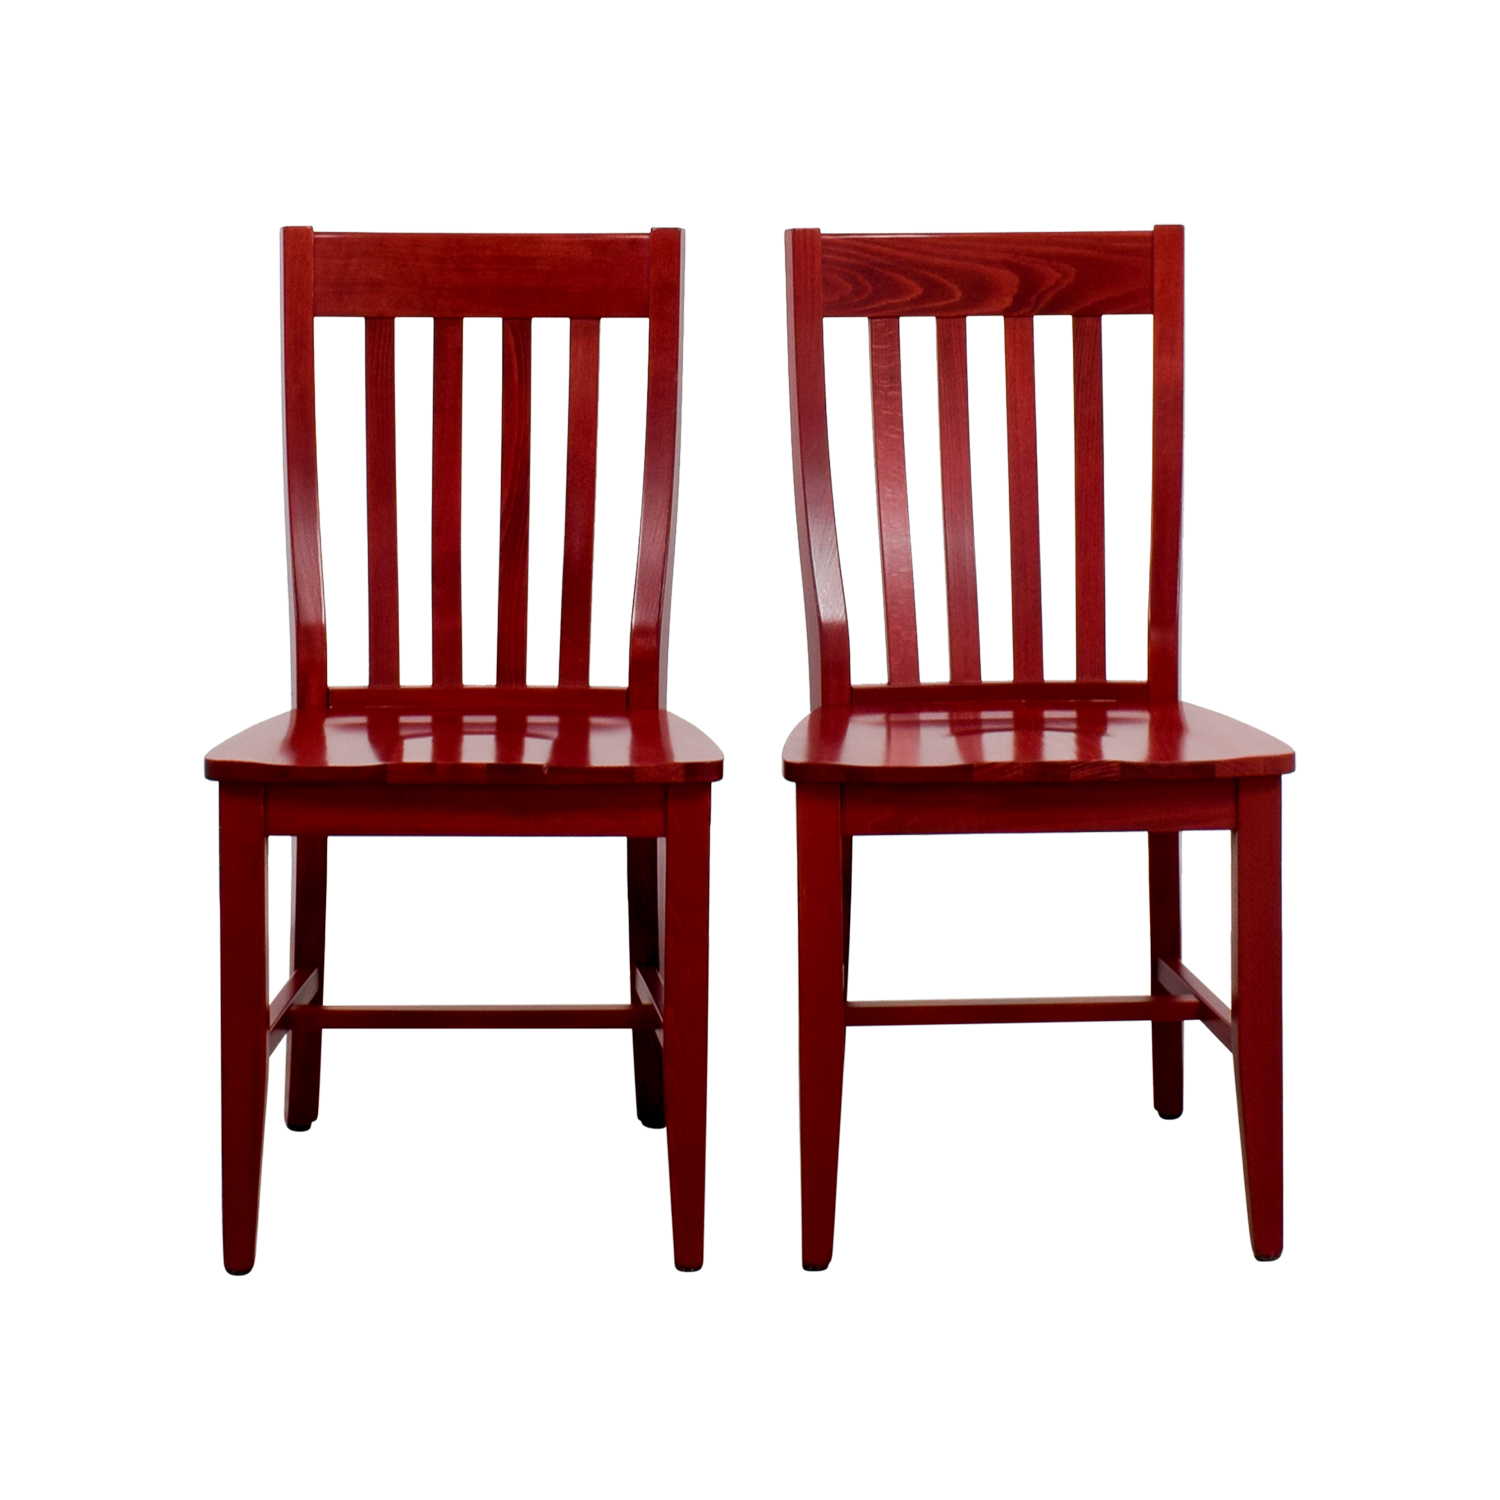 Emejing pottery barn dining room chairs photos - Pottery barn schoolhouse chairs ...